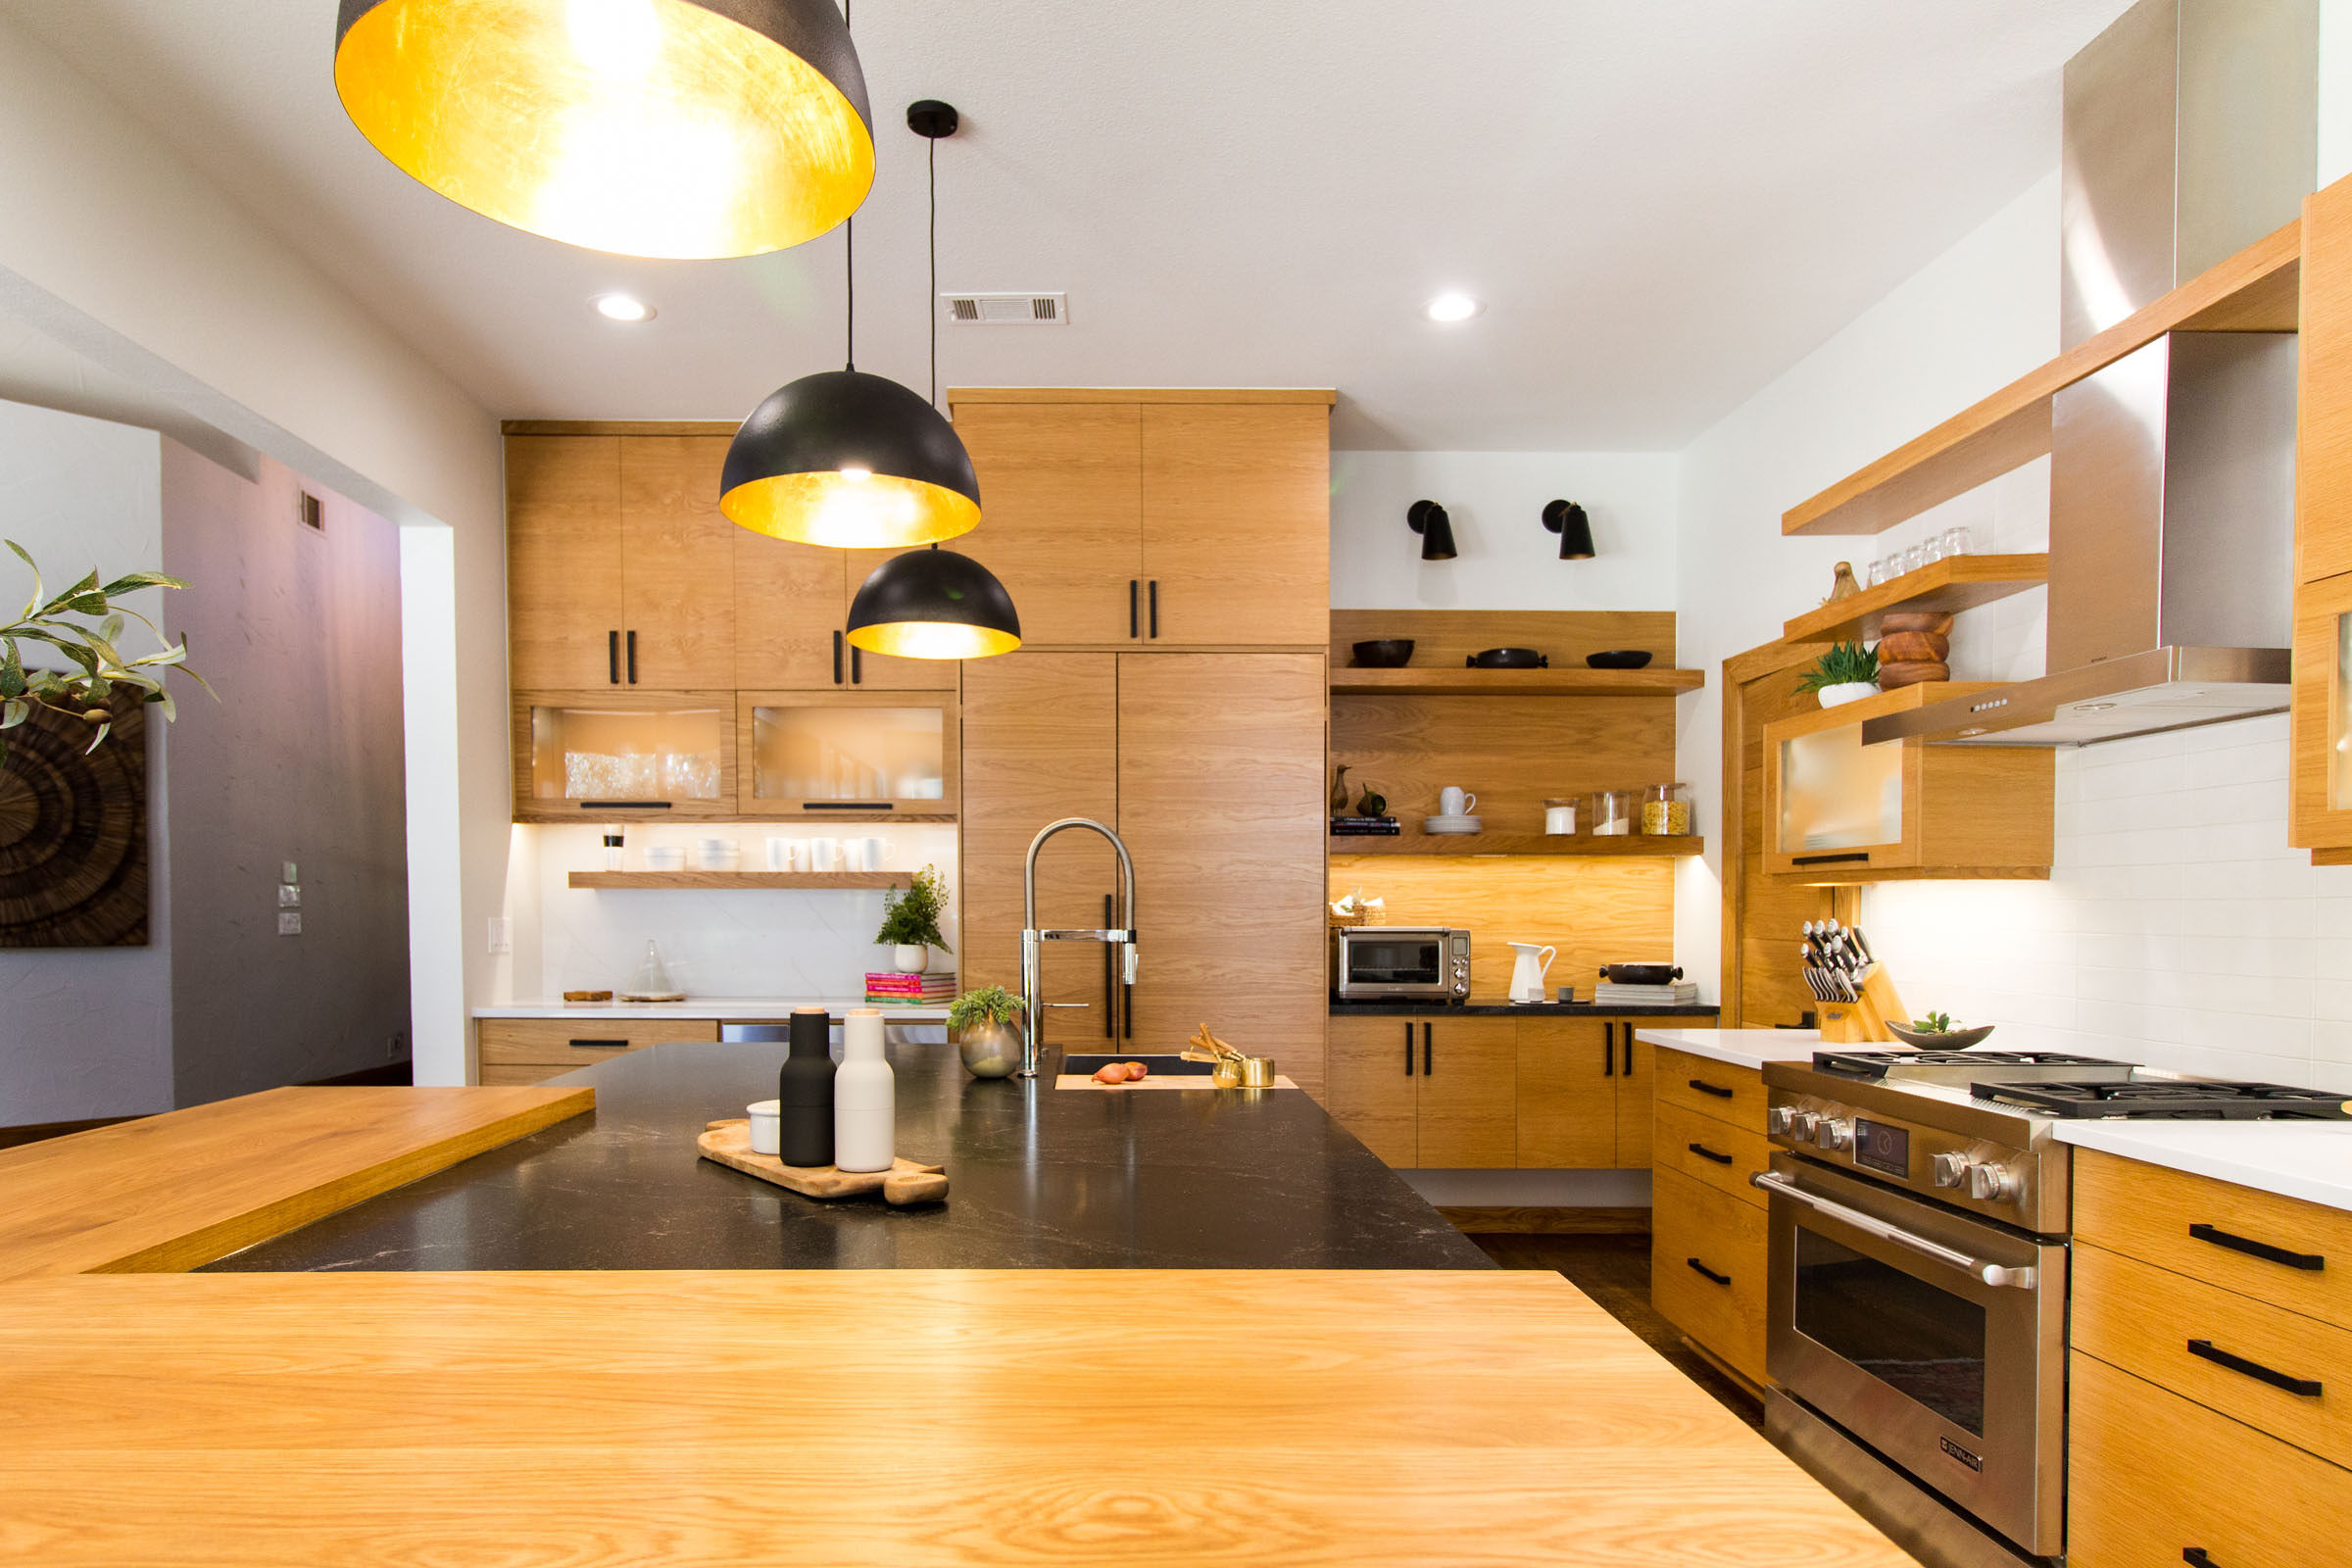 A picture capturing the beautiful blonde cabinets with a wood/granite island.